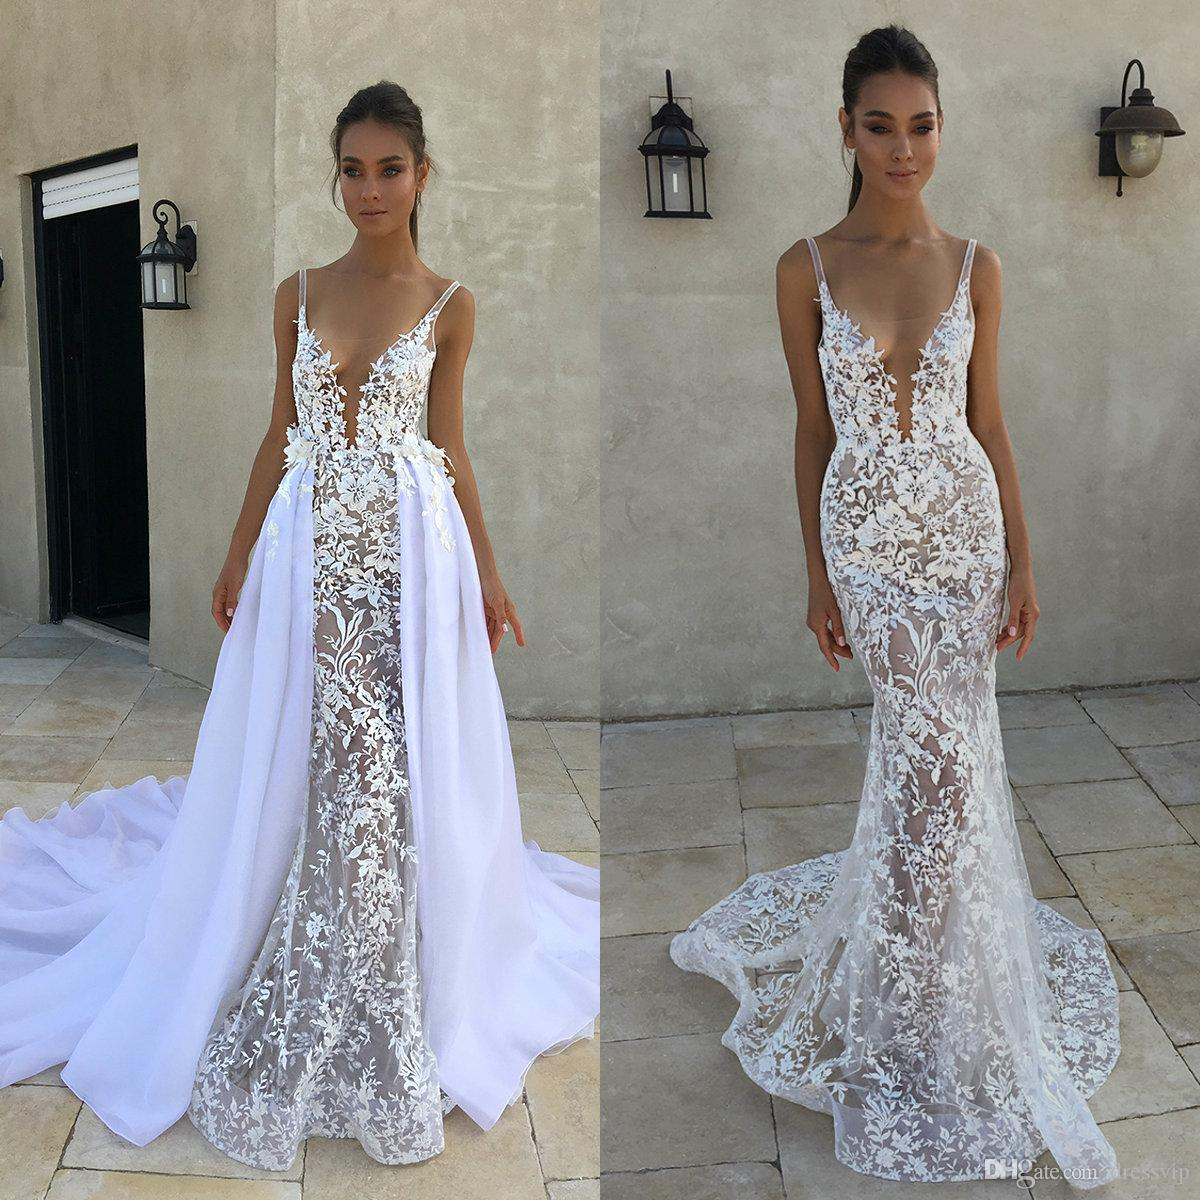 2018 Berta Mermaid Wedding Dresses With Detachable Skirt Deep V Neck Illusion Appliques Lace Wedding Gowns Sweep Train Sexy Bridal Dress